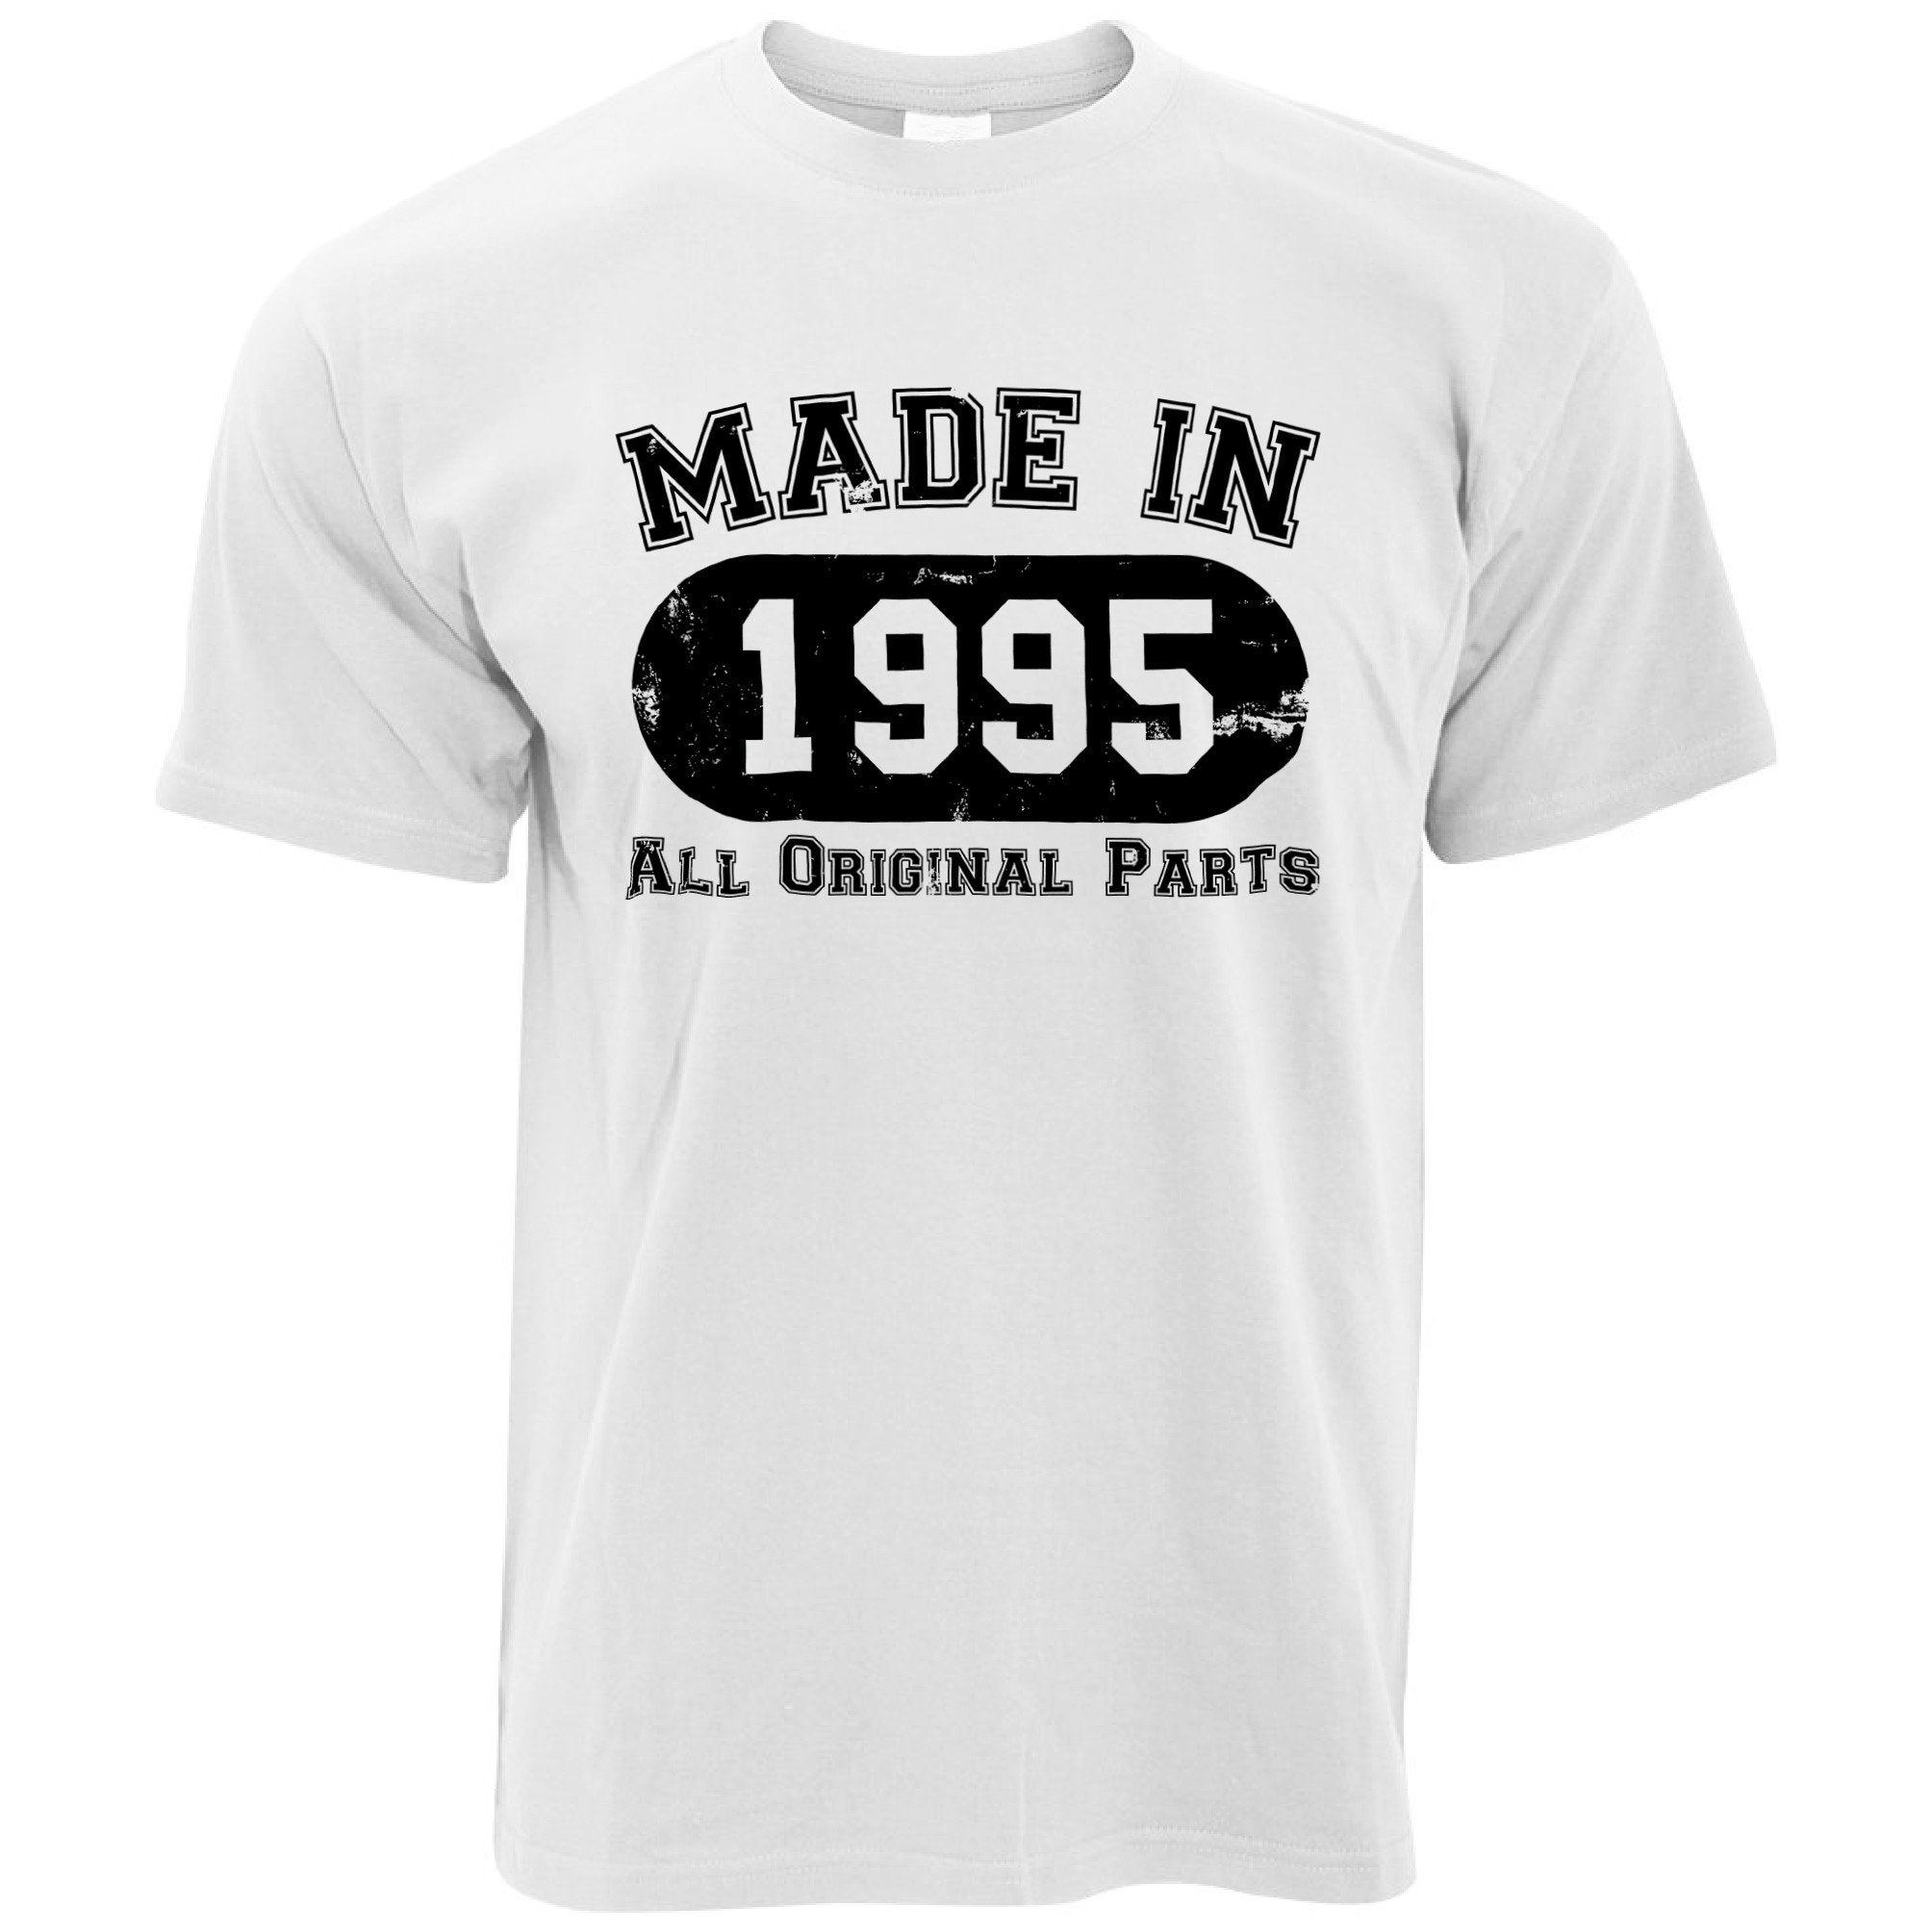 Made in 1995 All Original Parts Mens T-Shirt [Distressed]